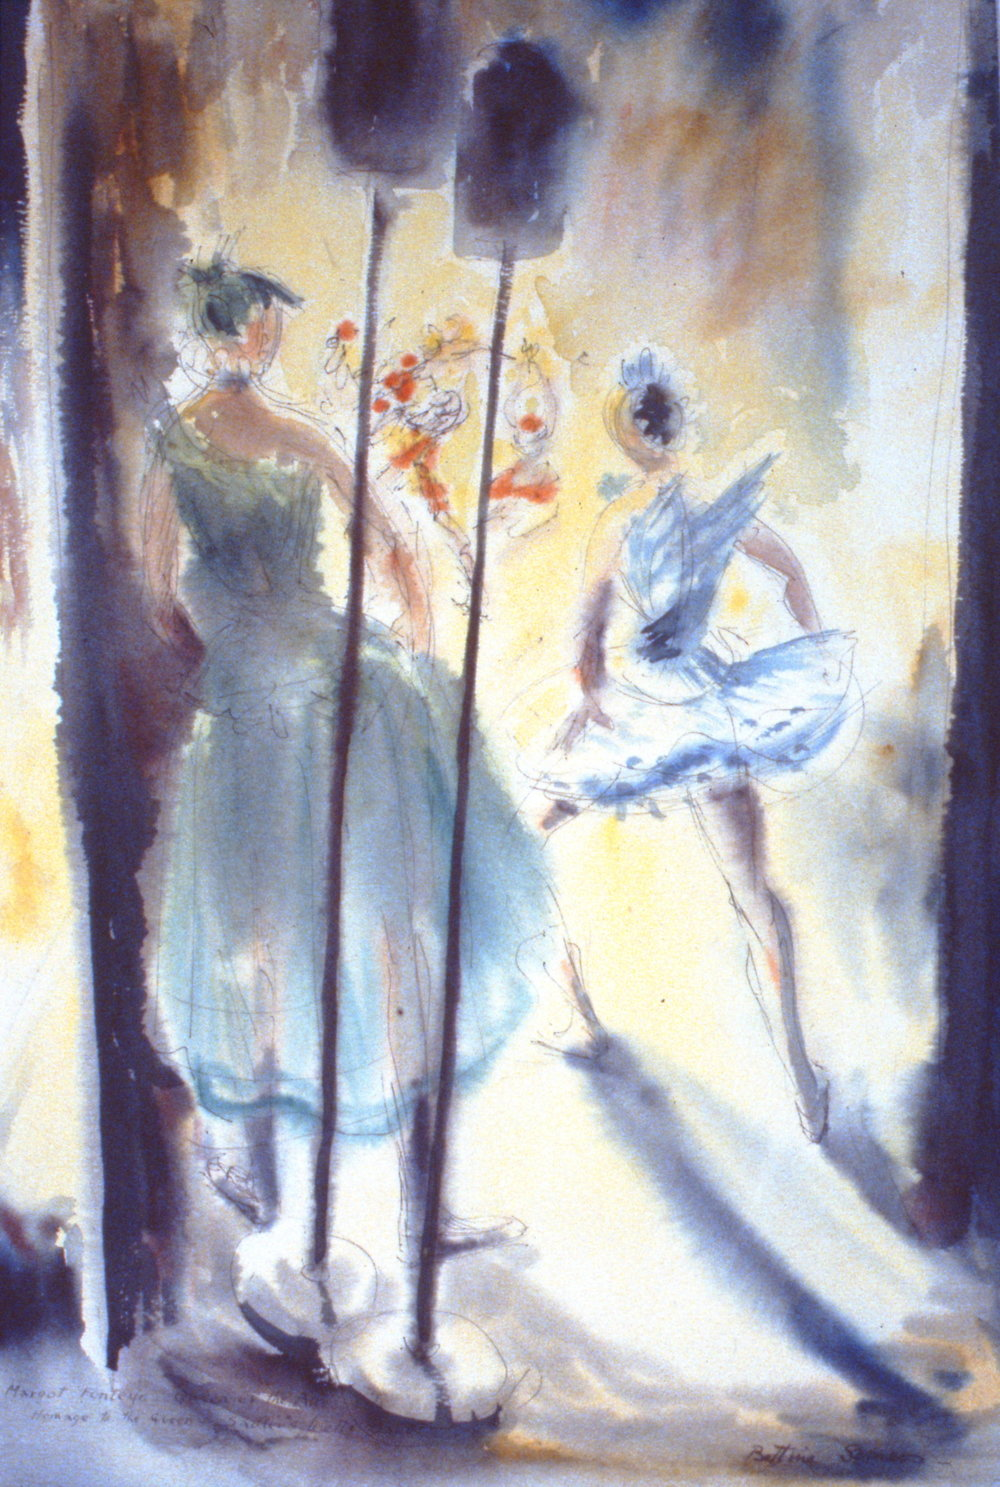 Margot Fonteyn (Homage to the Queen),  c. 1953, Bettina Somers, watercolour and ink on paper, 58 x 39 cm, 1990.01.02. Gift of the artists' estatec/o Mike & Gwen Calverley.